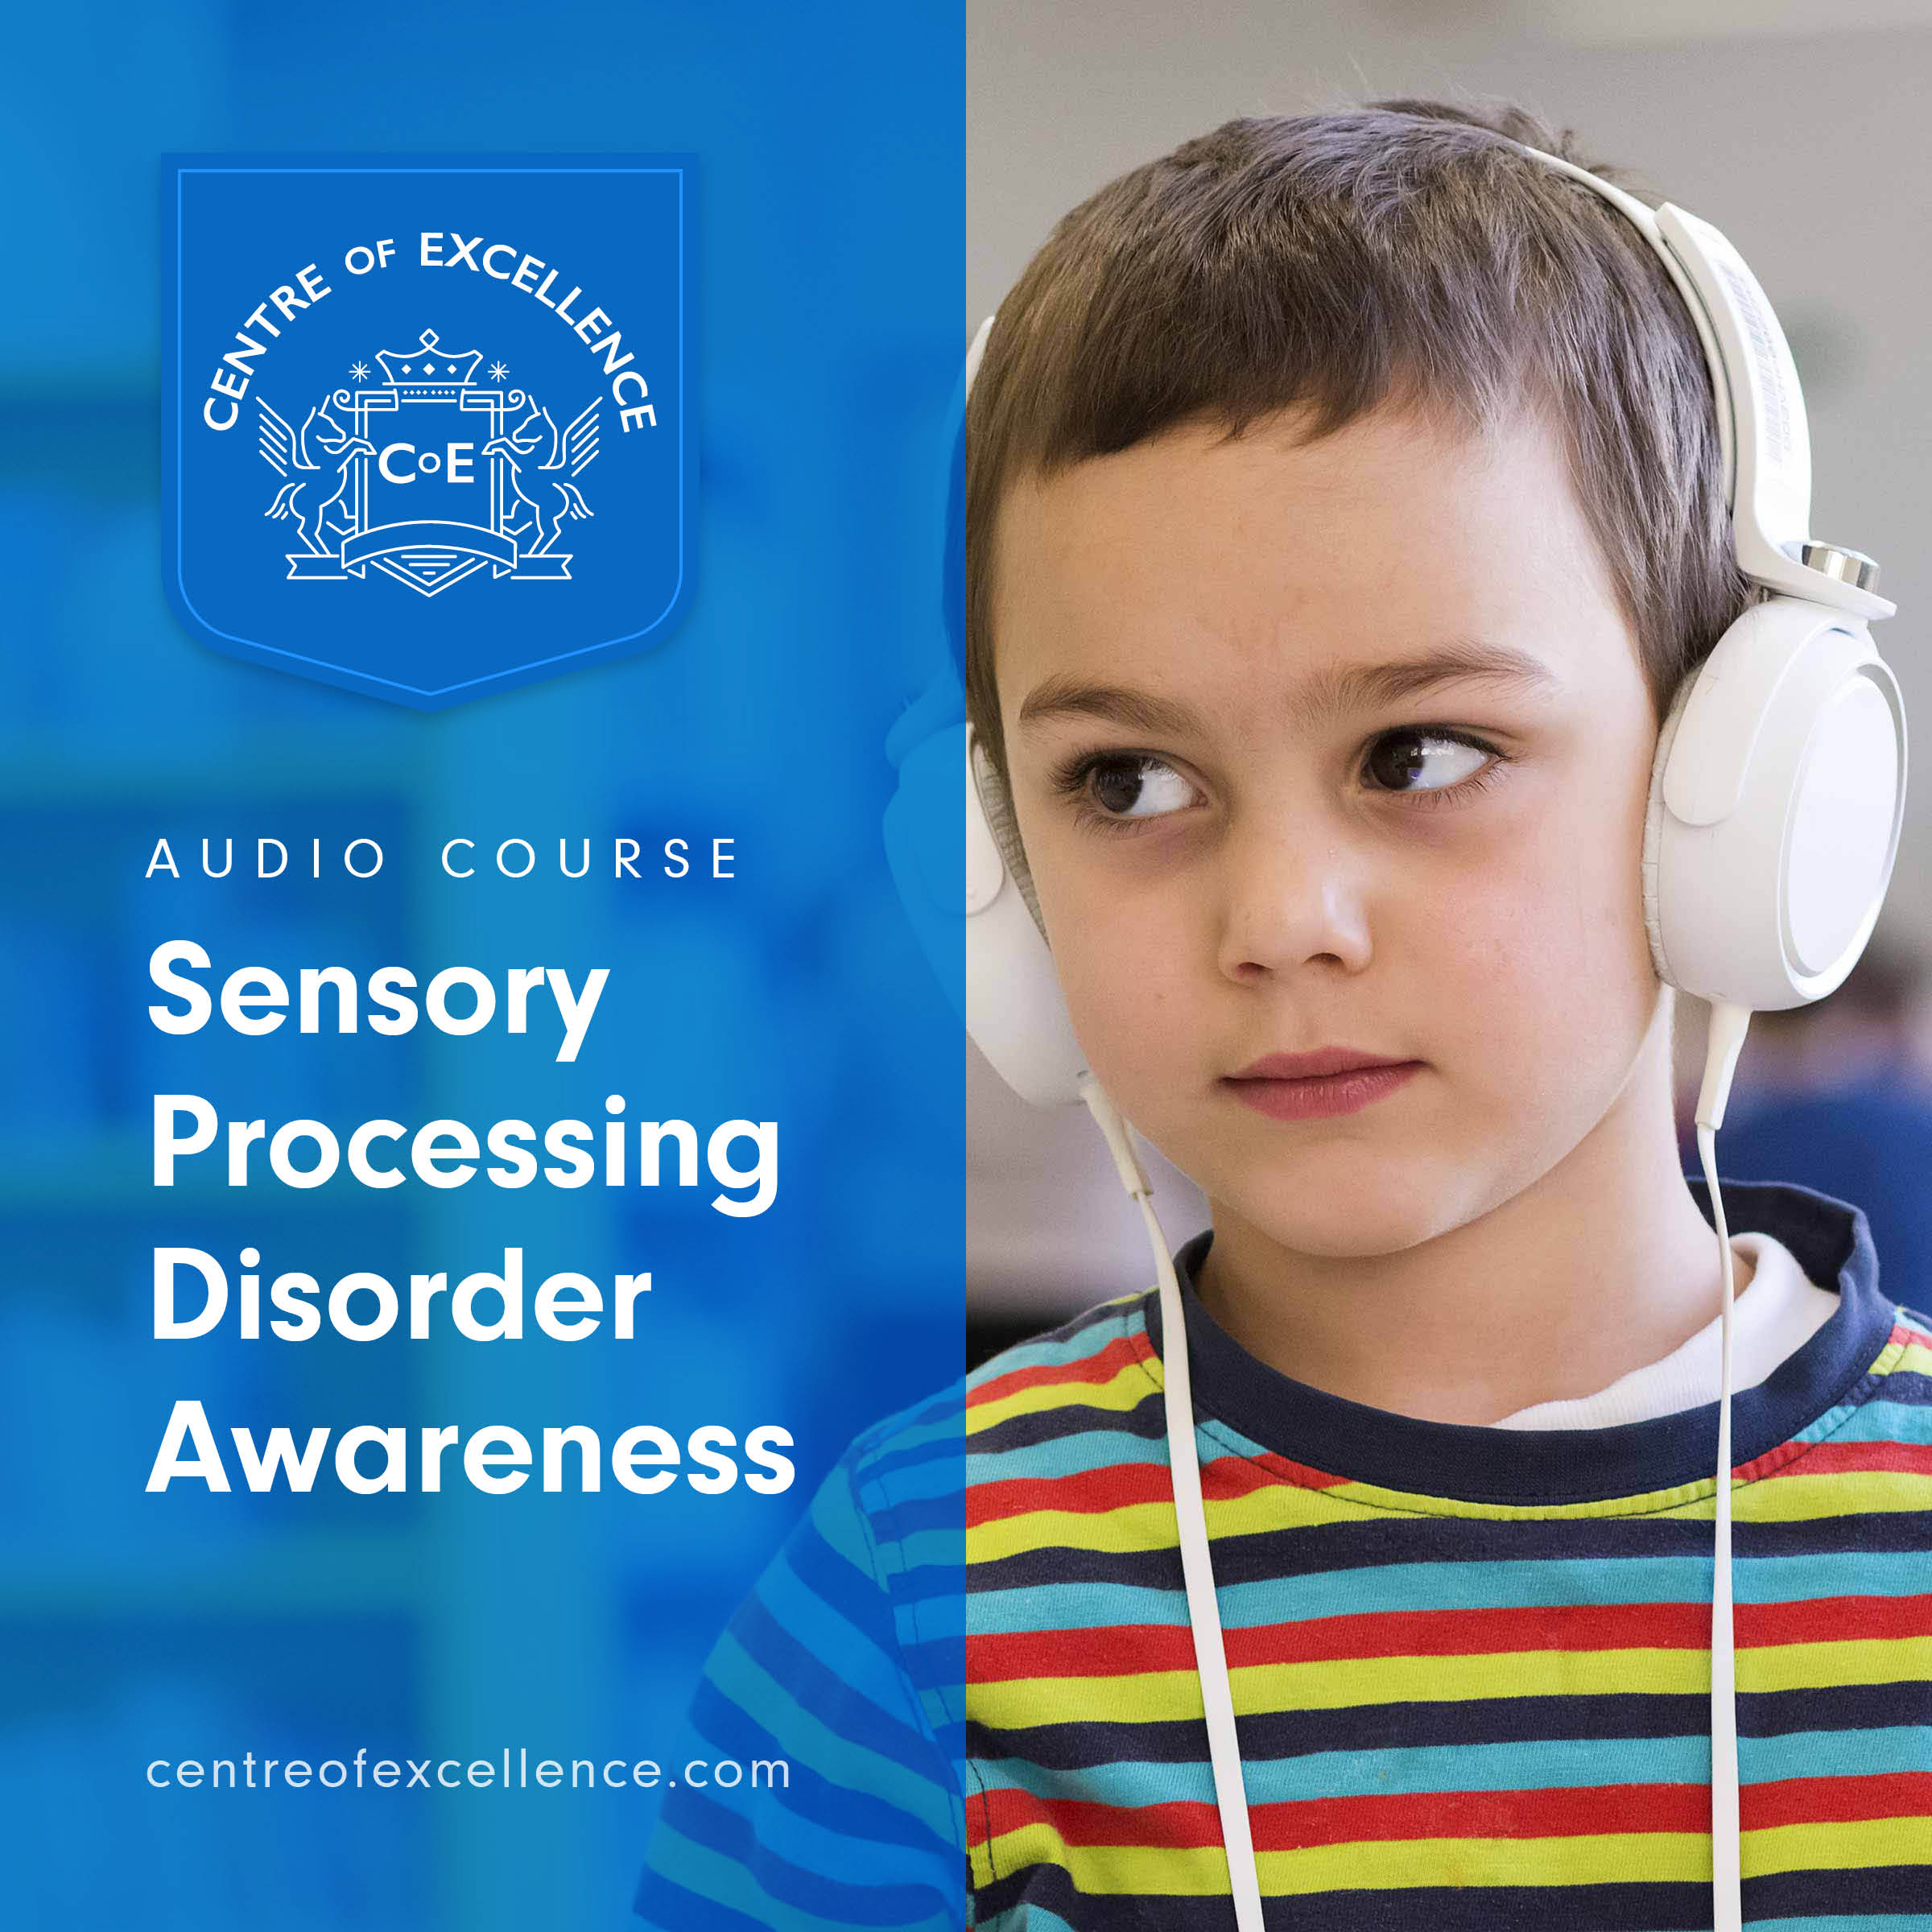 Sensory Processing Disorder Awareness Audiobook Cover - A photograph of a boy with Sensory Processing Order in a library, with headphones on